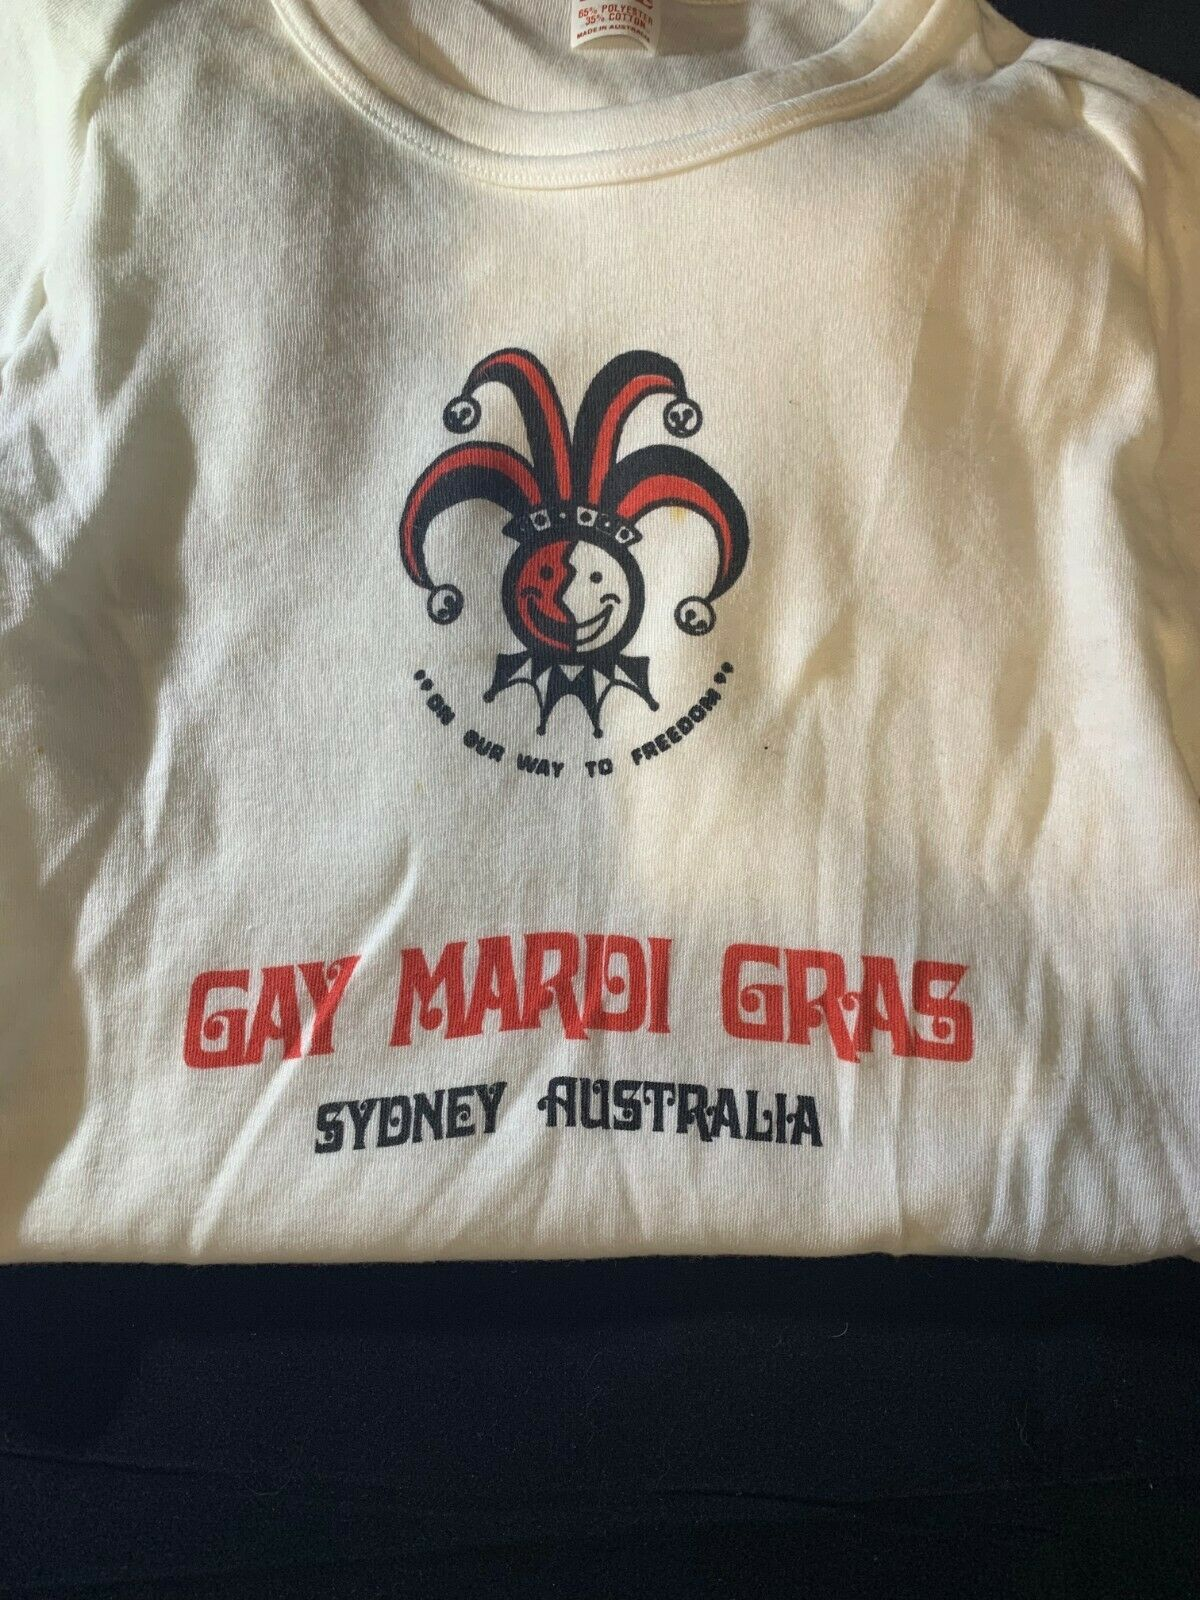 1982 Sydney Mardi Gras t-shirts, On Our Way To Freedom, gay, LGBT, queer vintage